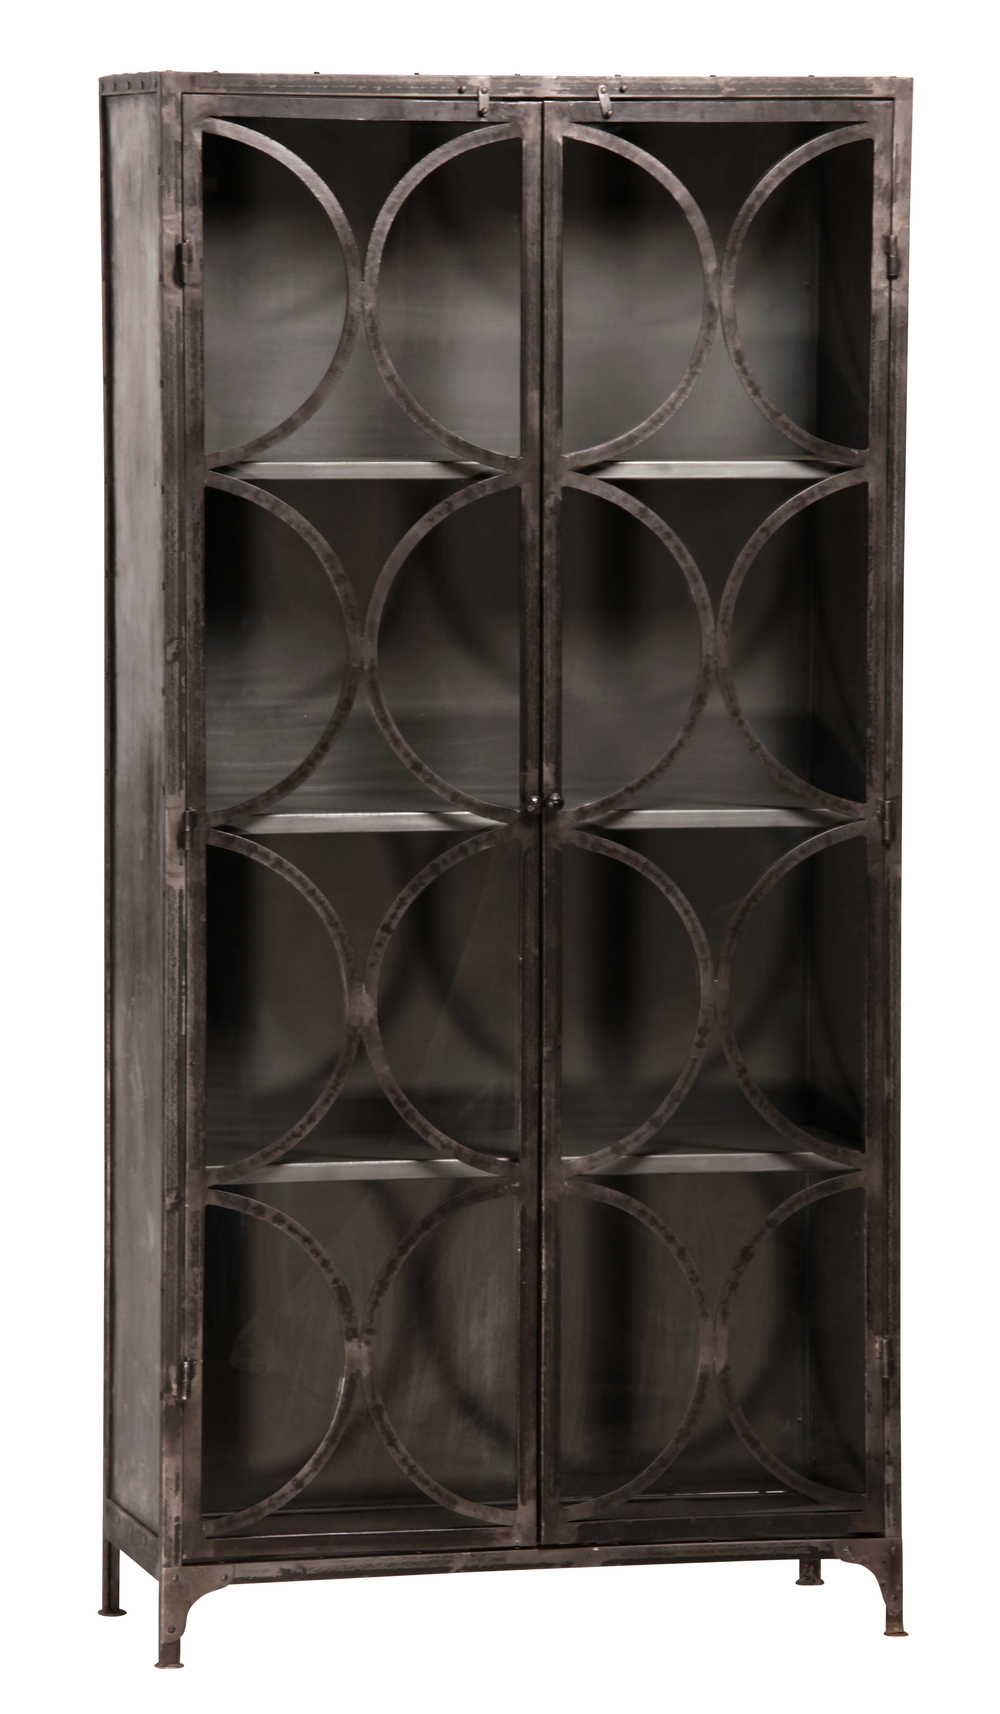 Dovetail Furniture - Dudley Cabinet